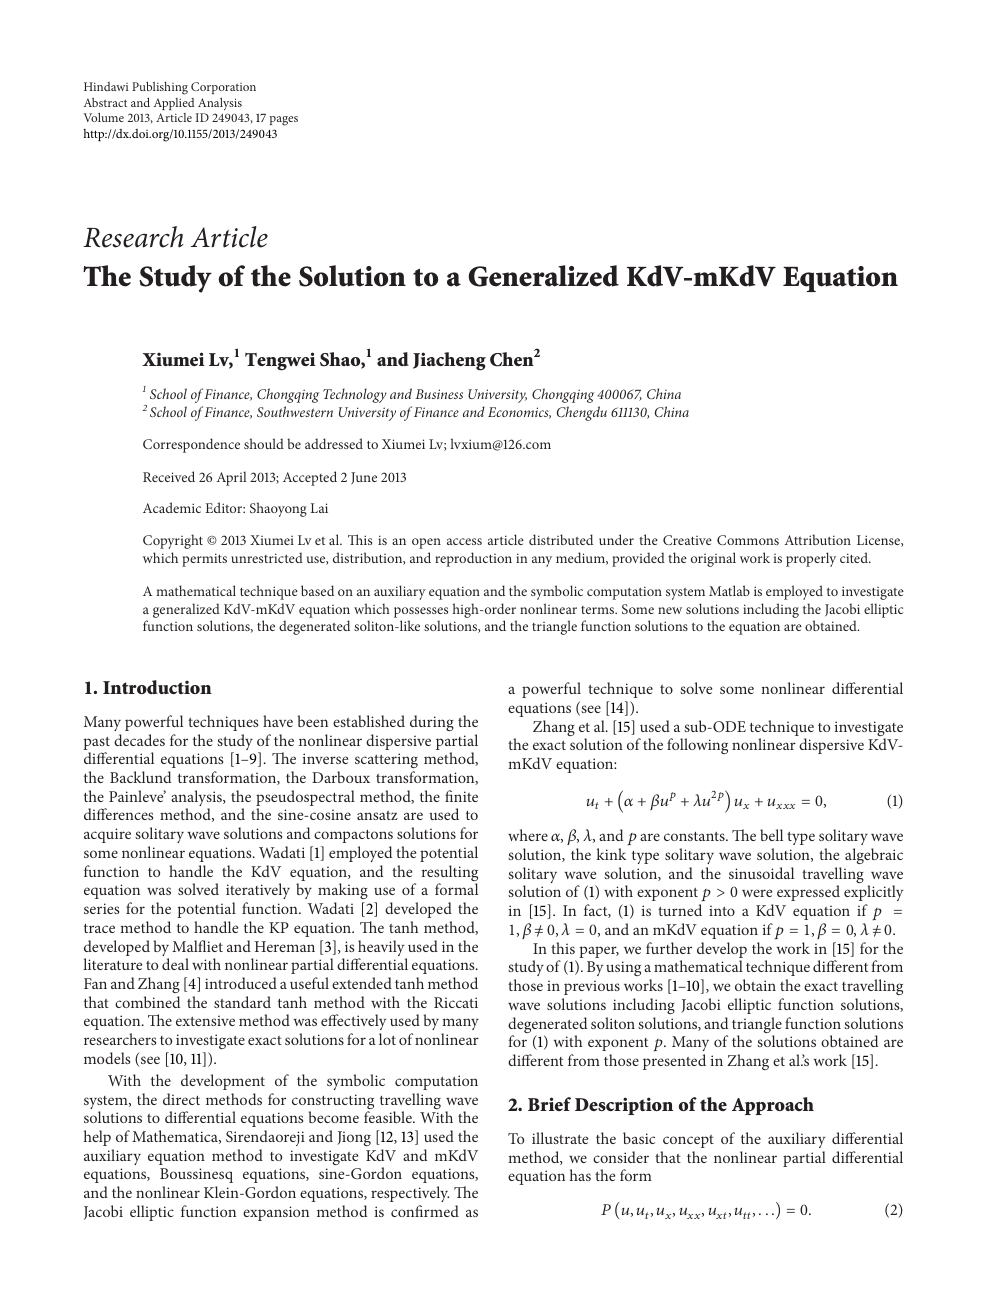 The Study of the Solution to a Generalized KdV-mKdV Equation